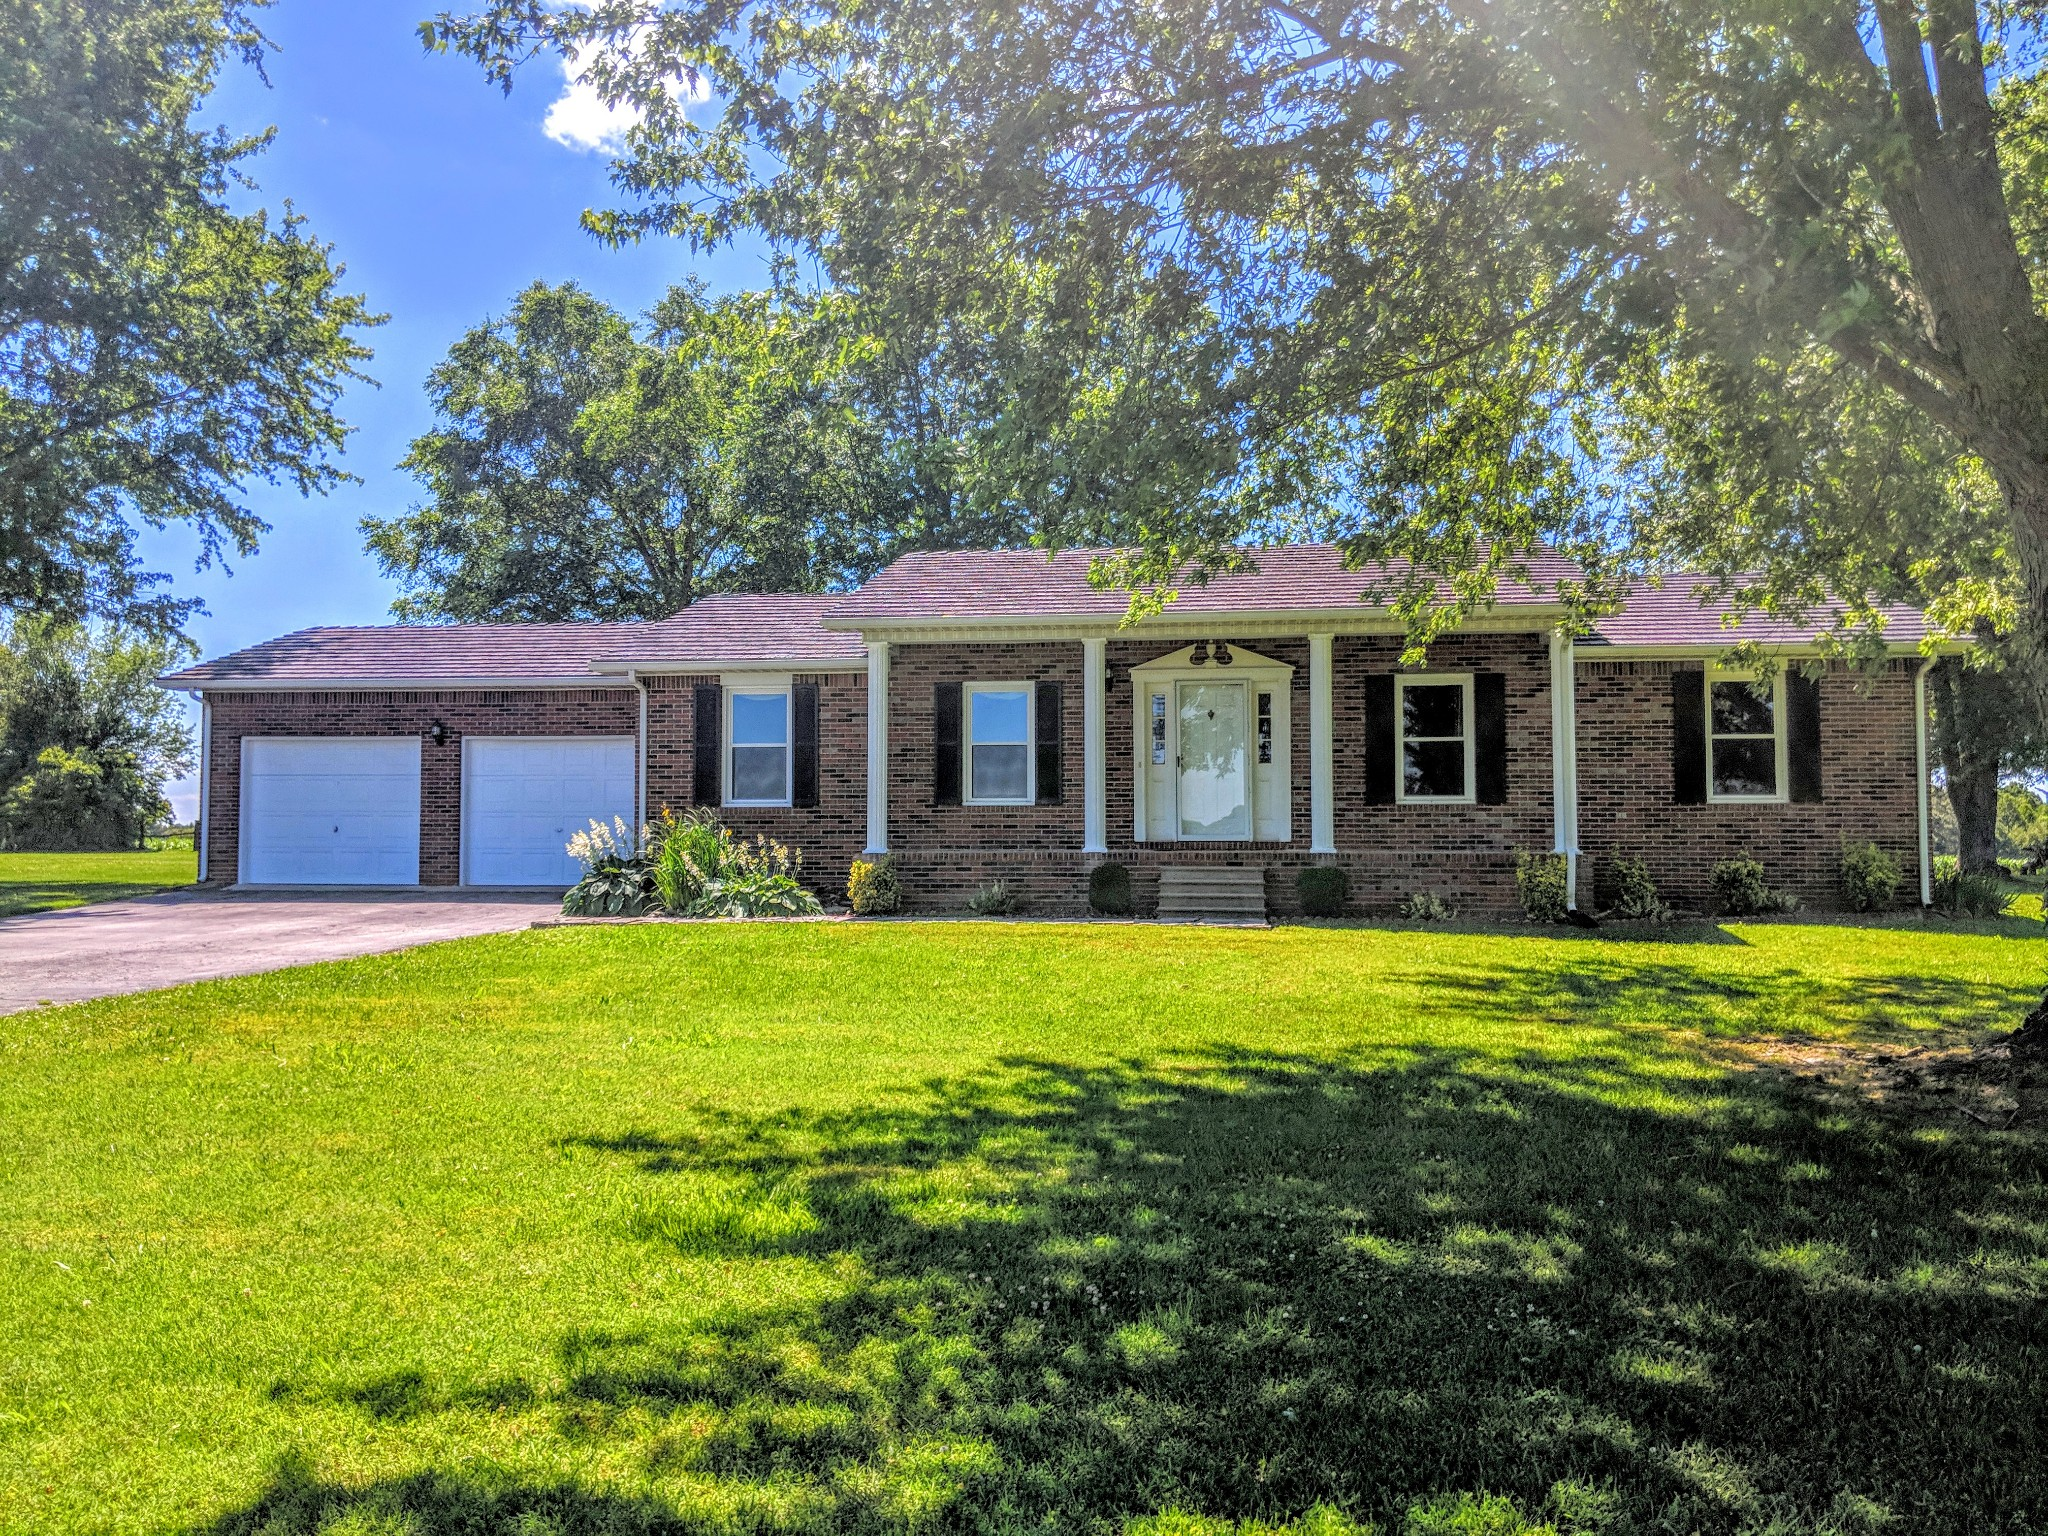 6650 Jim Cummings Hwy, Bradyville, TN 37026 - Bradyville, TN real estate listing